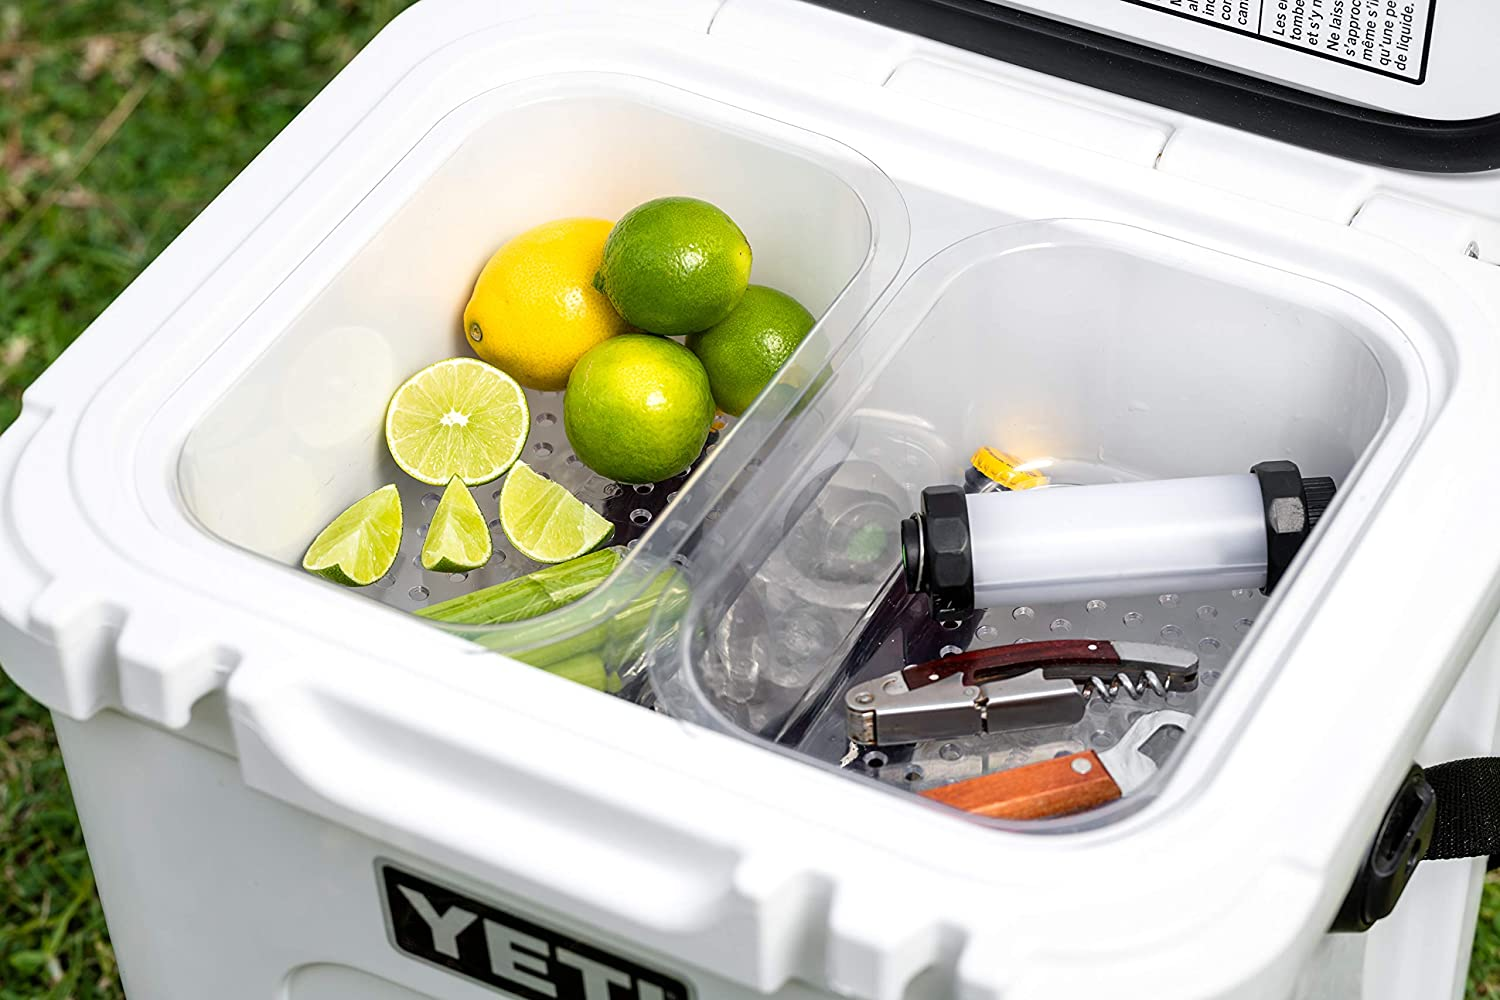 BEAST COOLER ACCESSORIES 2-Pack of Yeti Roadie 24 Compatible Dry Goods Trays - Two Trays Specifically Designed to Fit Side-by-Side and be Compatible with The YETI Roadie 24 Hard Cooler